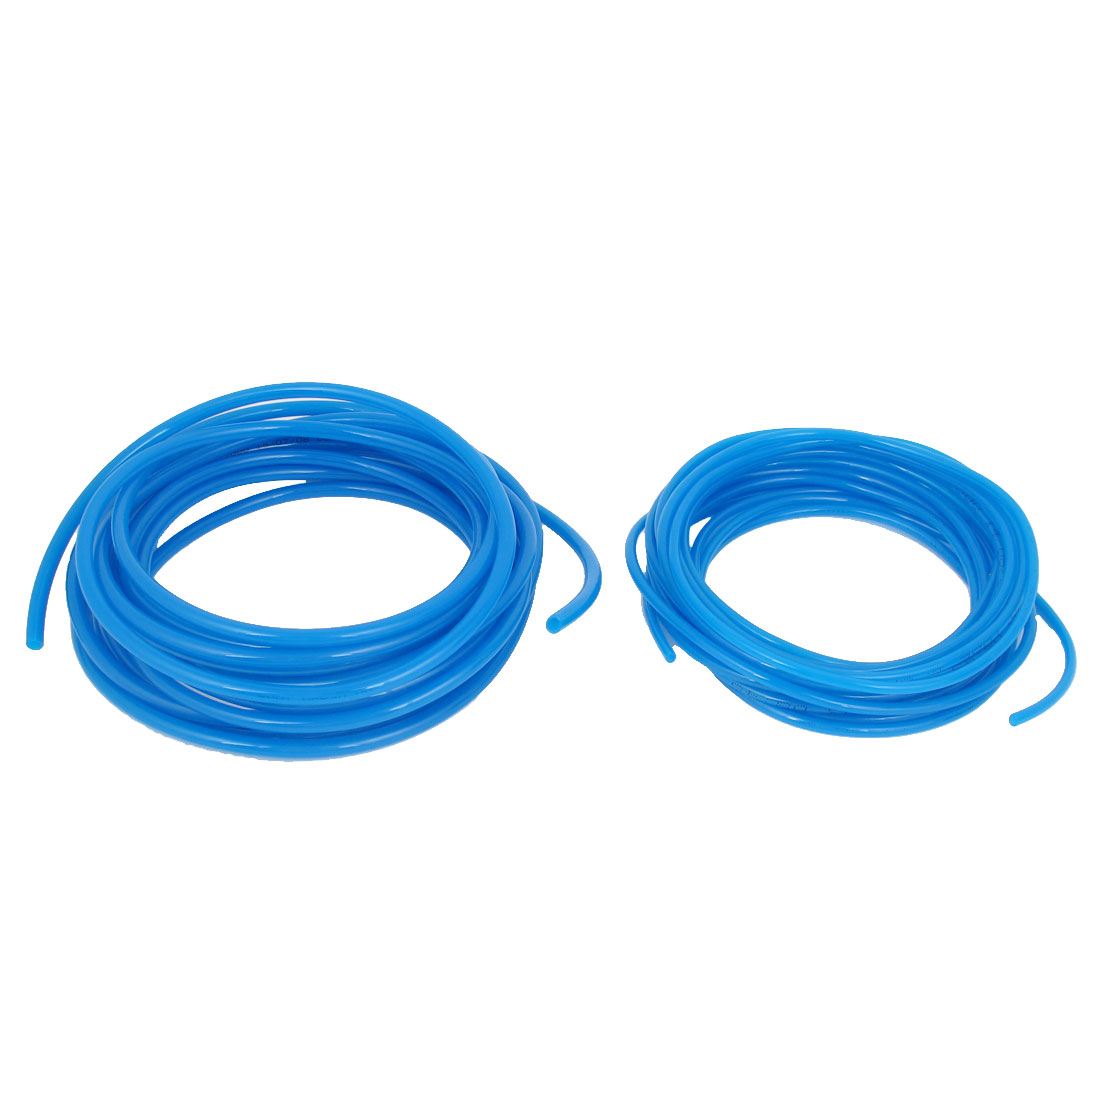 2pcs PU Polyurethane Flexible Air Tubing Pneumatic Pipe Tube Hose 20Ft Blue